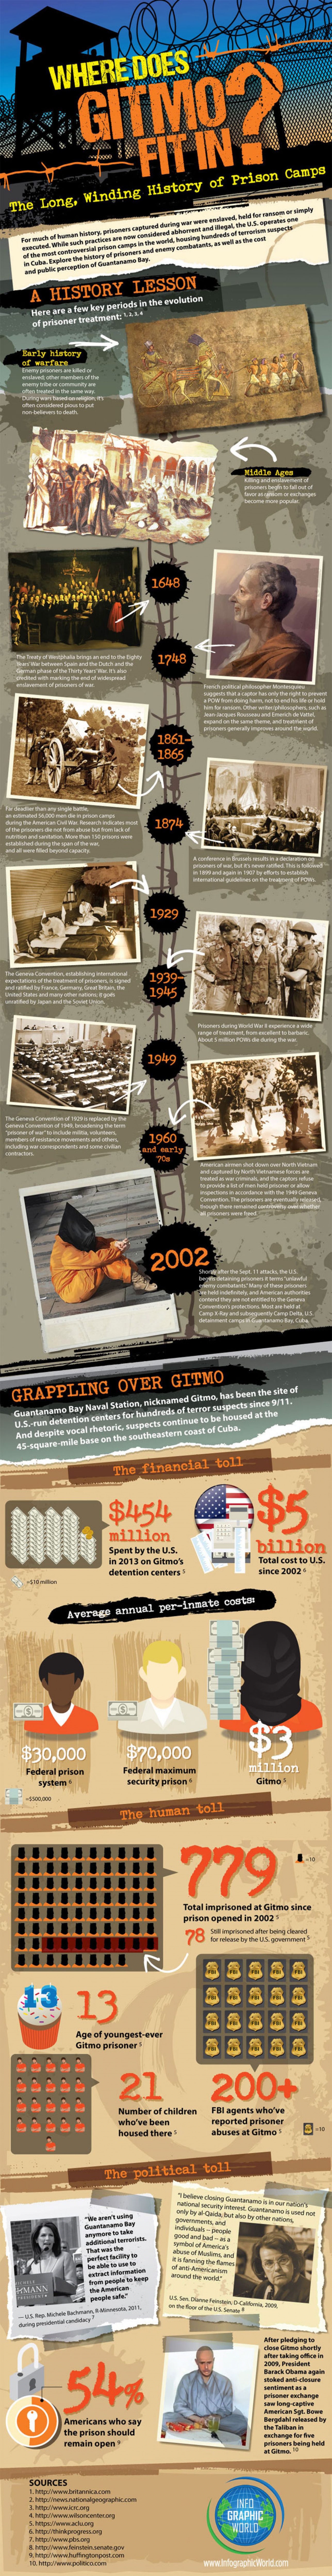 Where Does Gitmo Fit In? The Long, Winding History Of Prison Camps Infographic